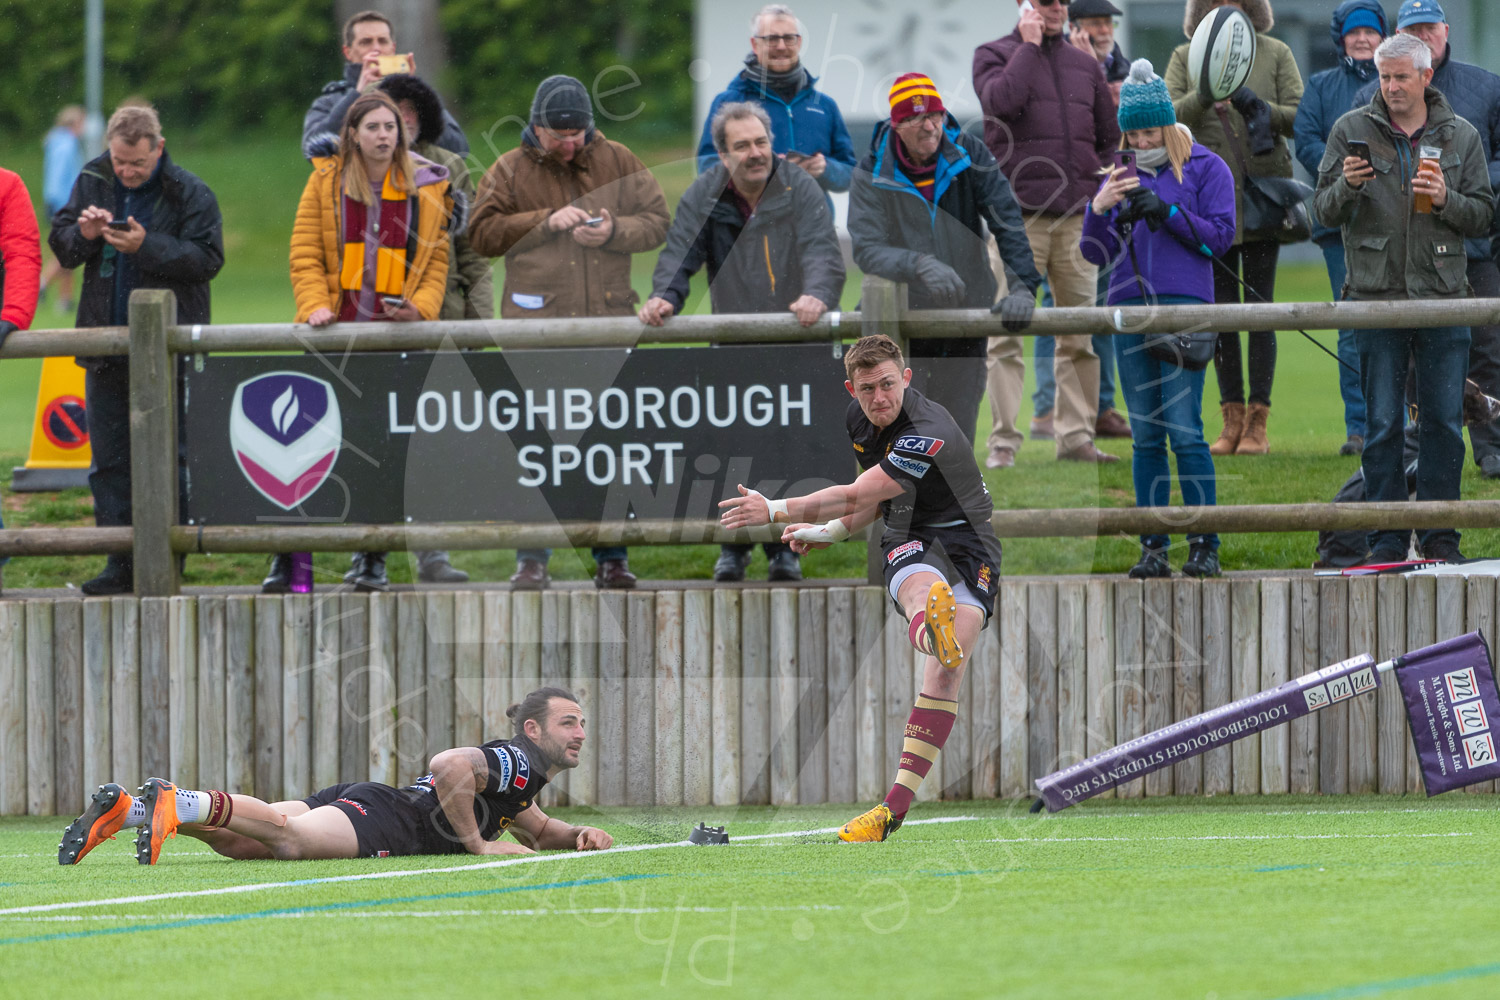 20190427 Loughborough vs Ampthill 1st XV #6223